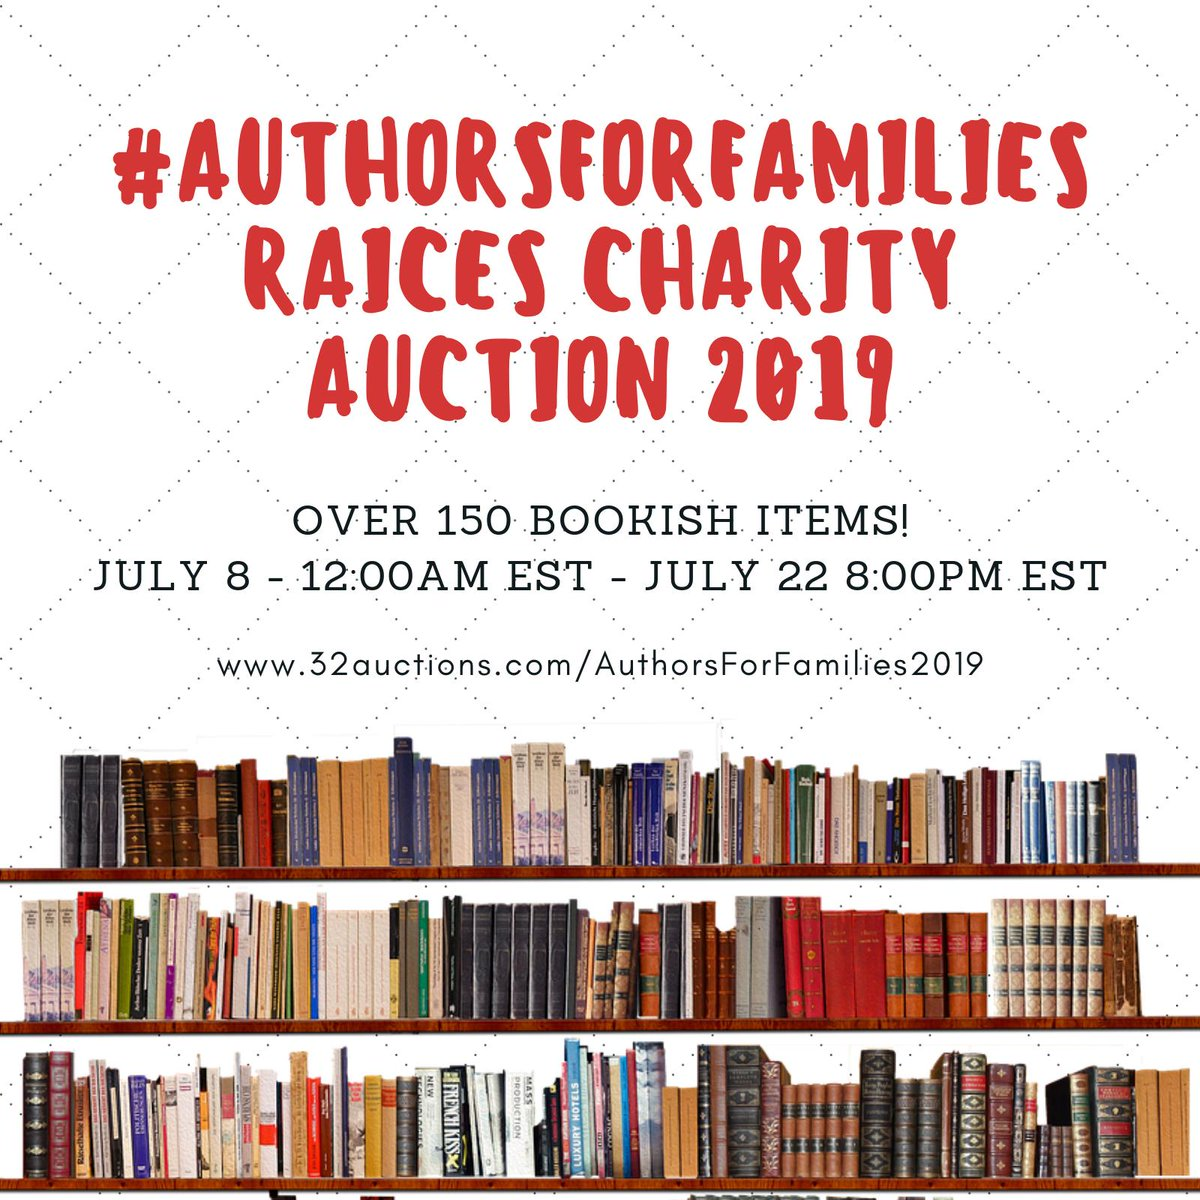 Ta-da! The #Authorsforfamilies RAICES Charity Auction goes LIVE midnight July 8th 2019! We were able to add 152 of the 300+ donation offers we received, so THANK YOU all! Please refer to this thread for updates & answers to FAQs. ❤️ 32auctions.com/AuthorsForFami…